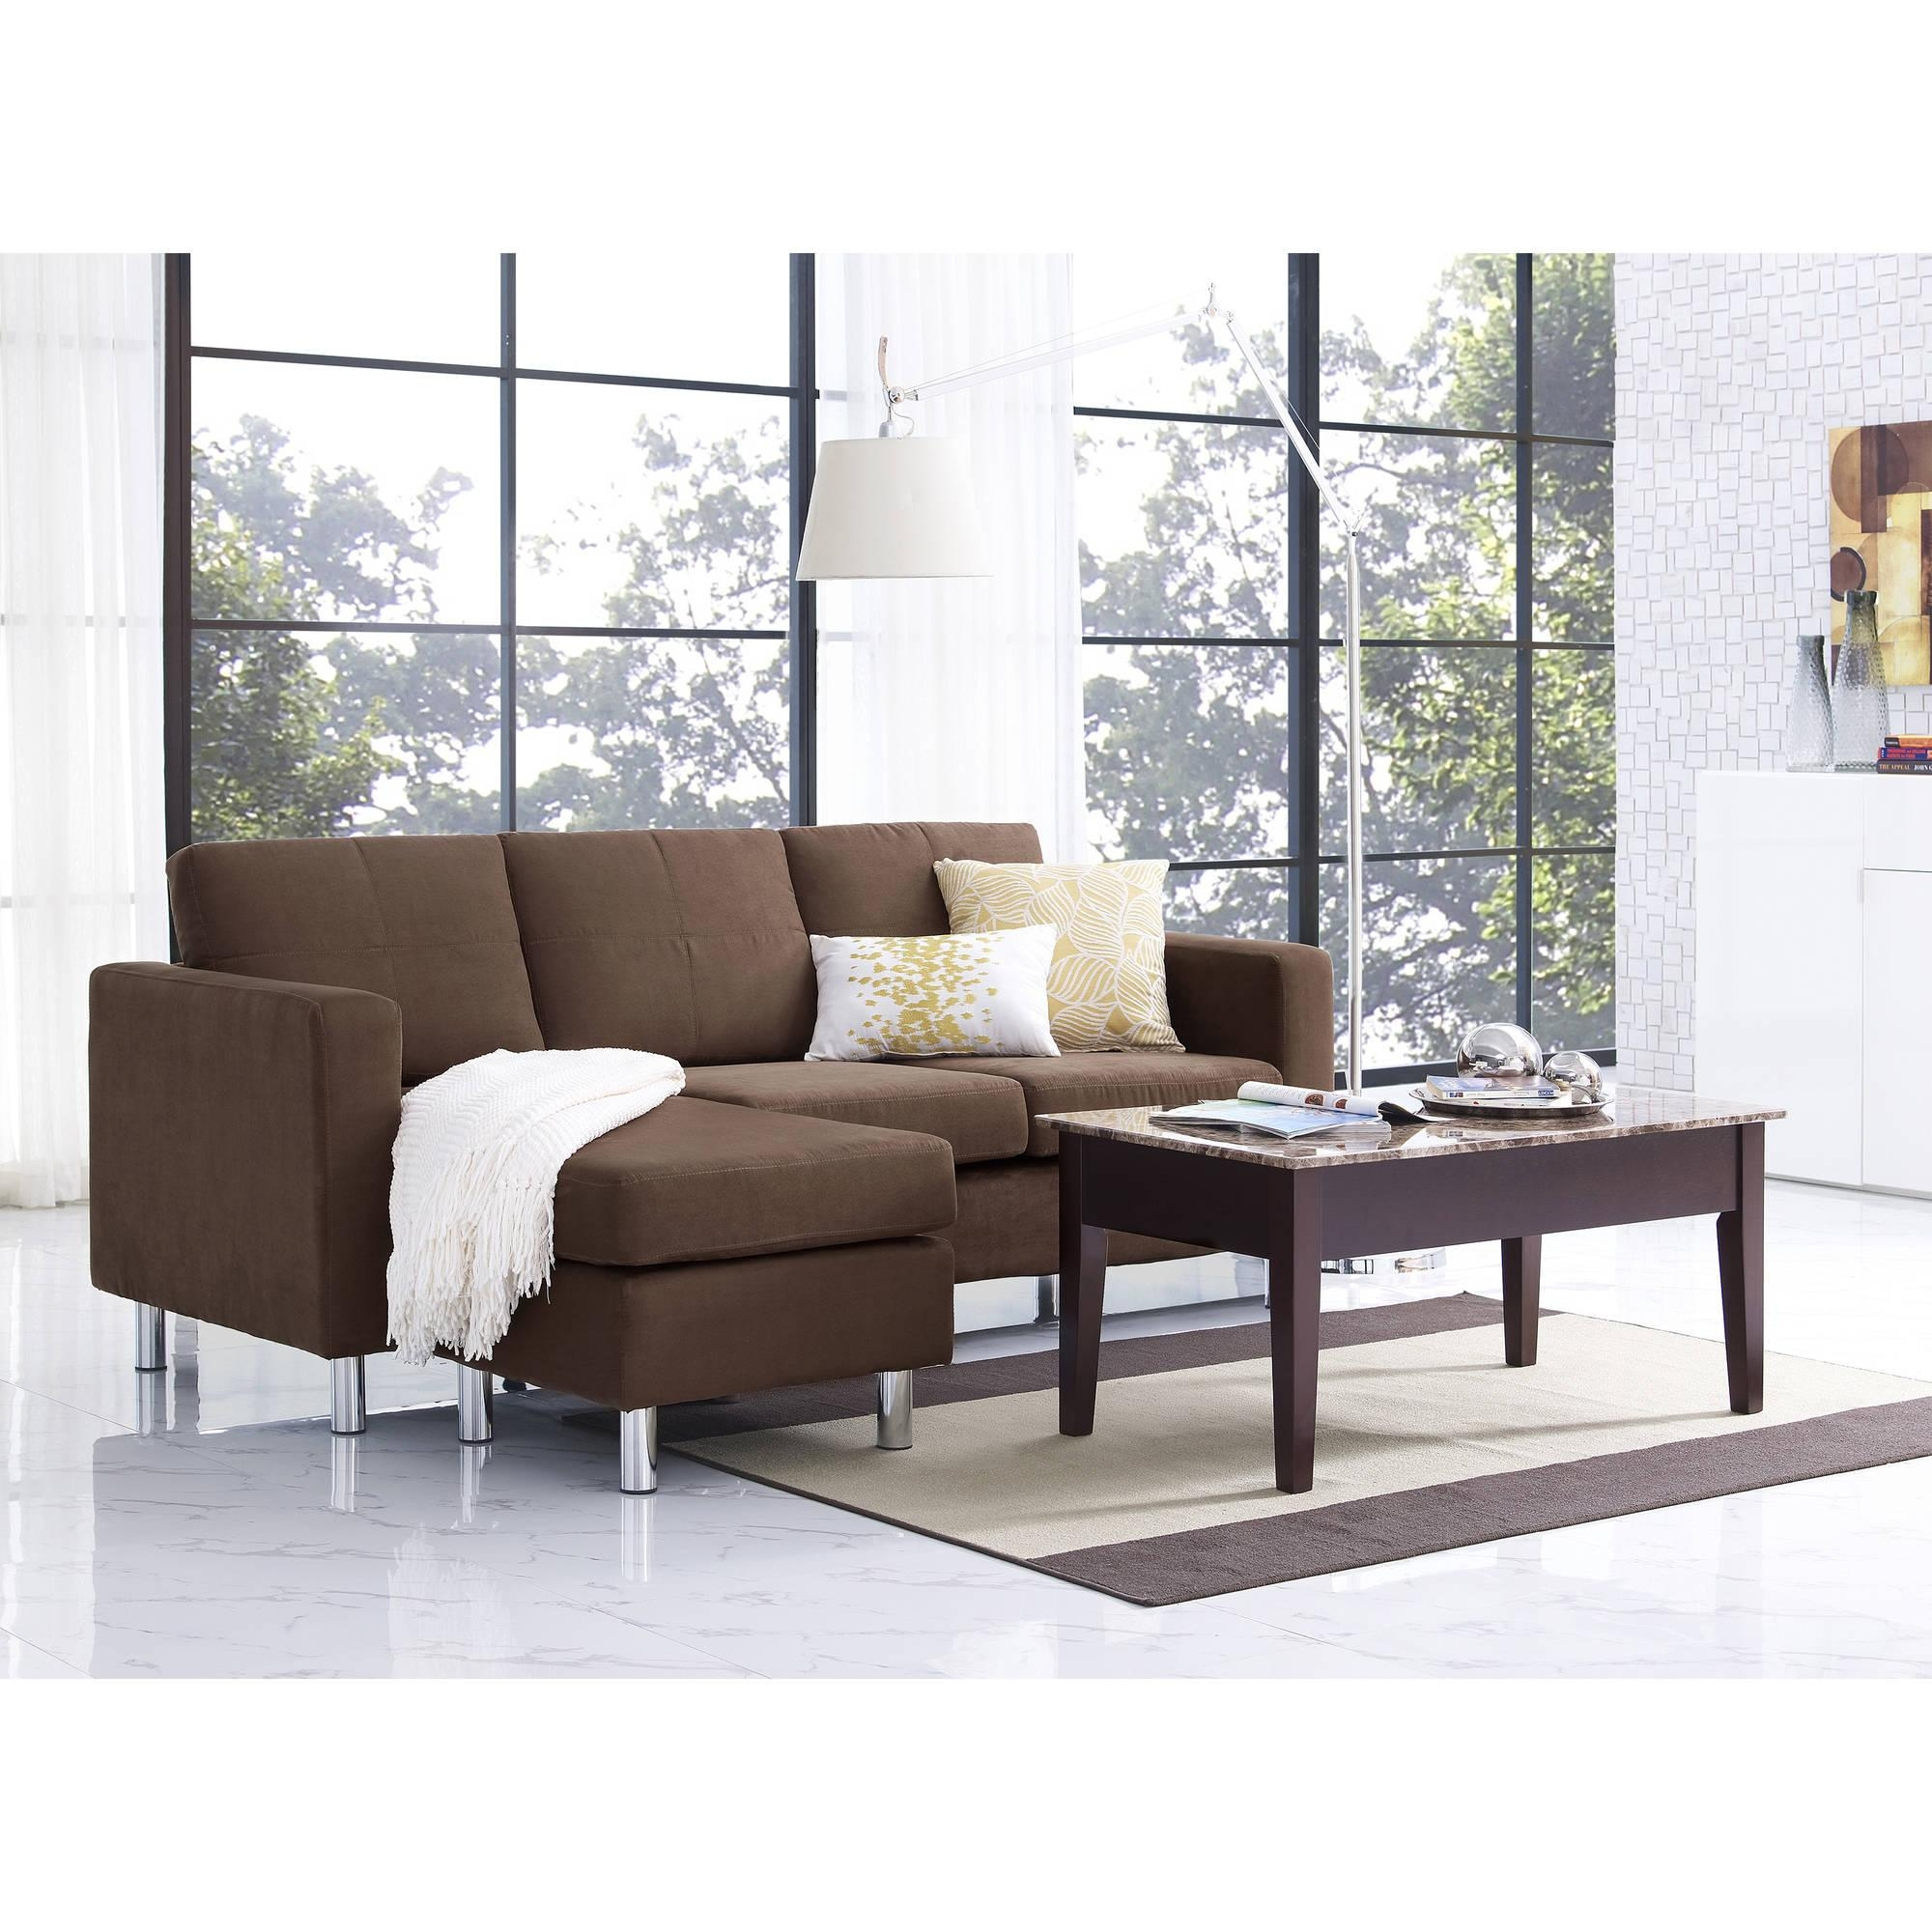 Dorel Living Small Spaces Configurable Sectional Sofa, Multiple Pertaining To Sectional Sofas In Small Spaces (Image 8 of 20)